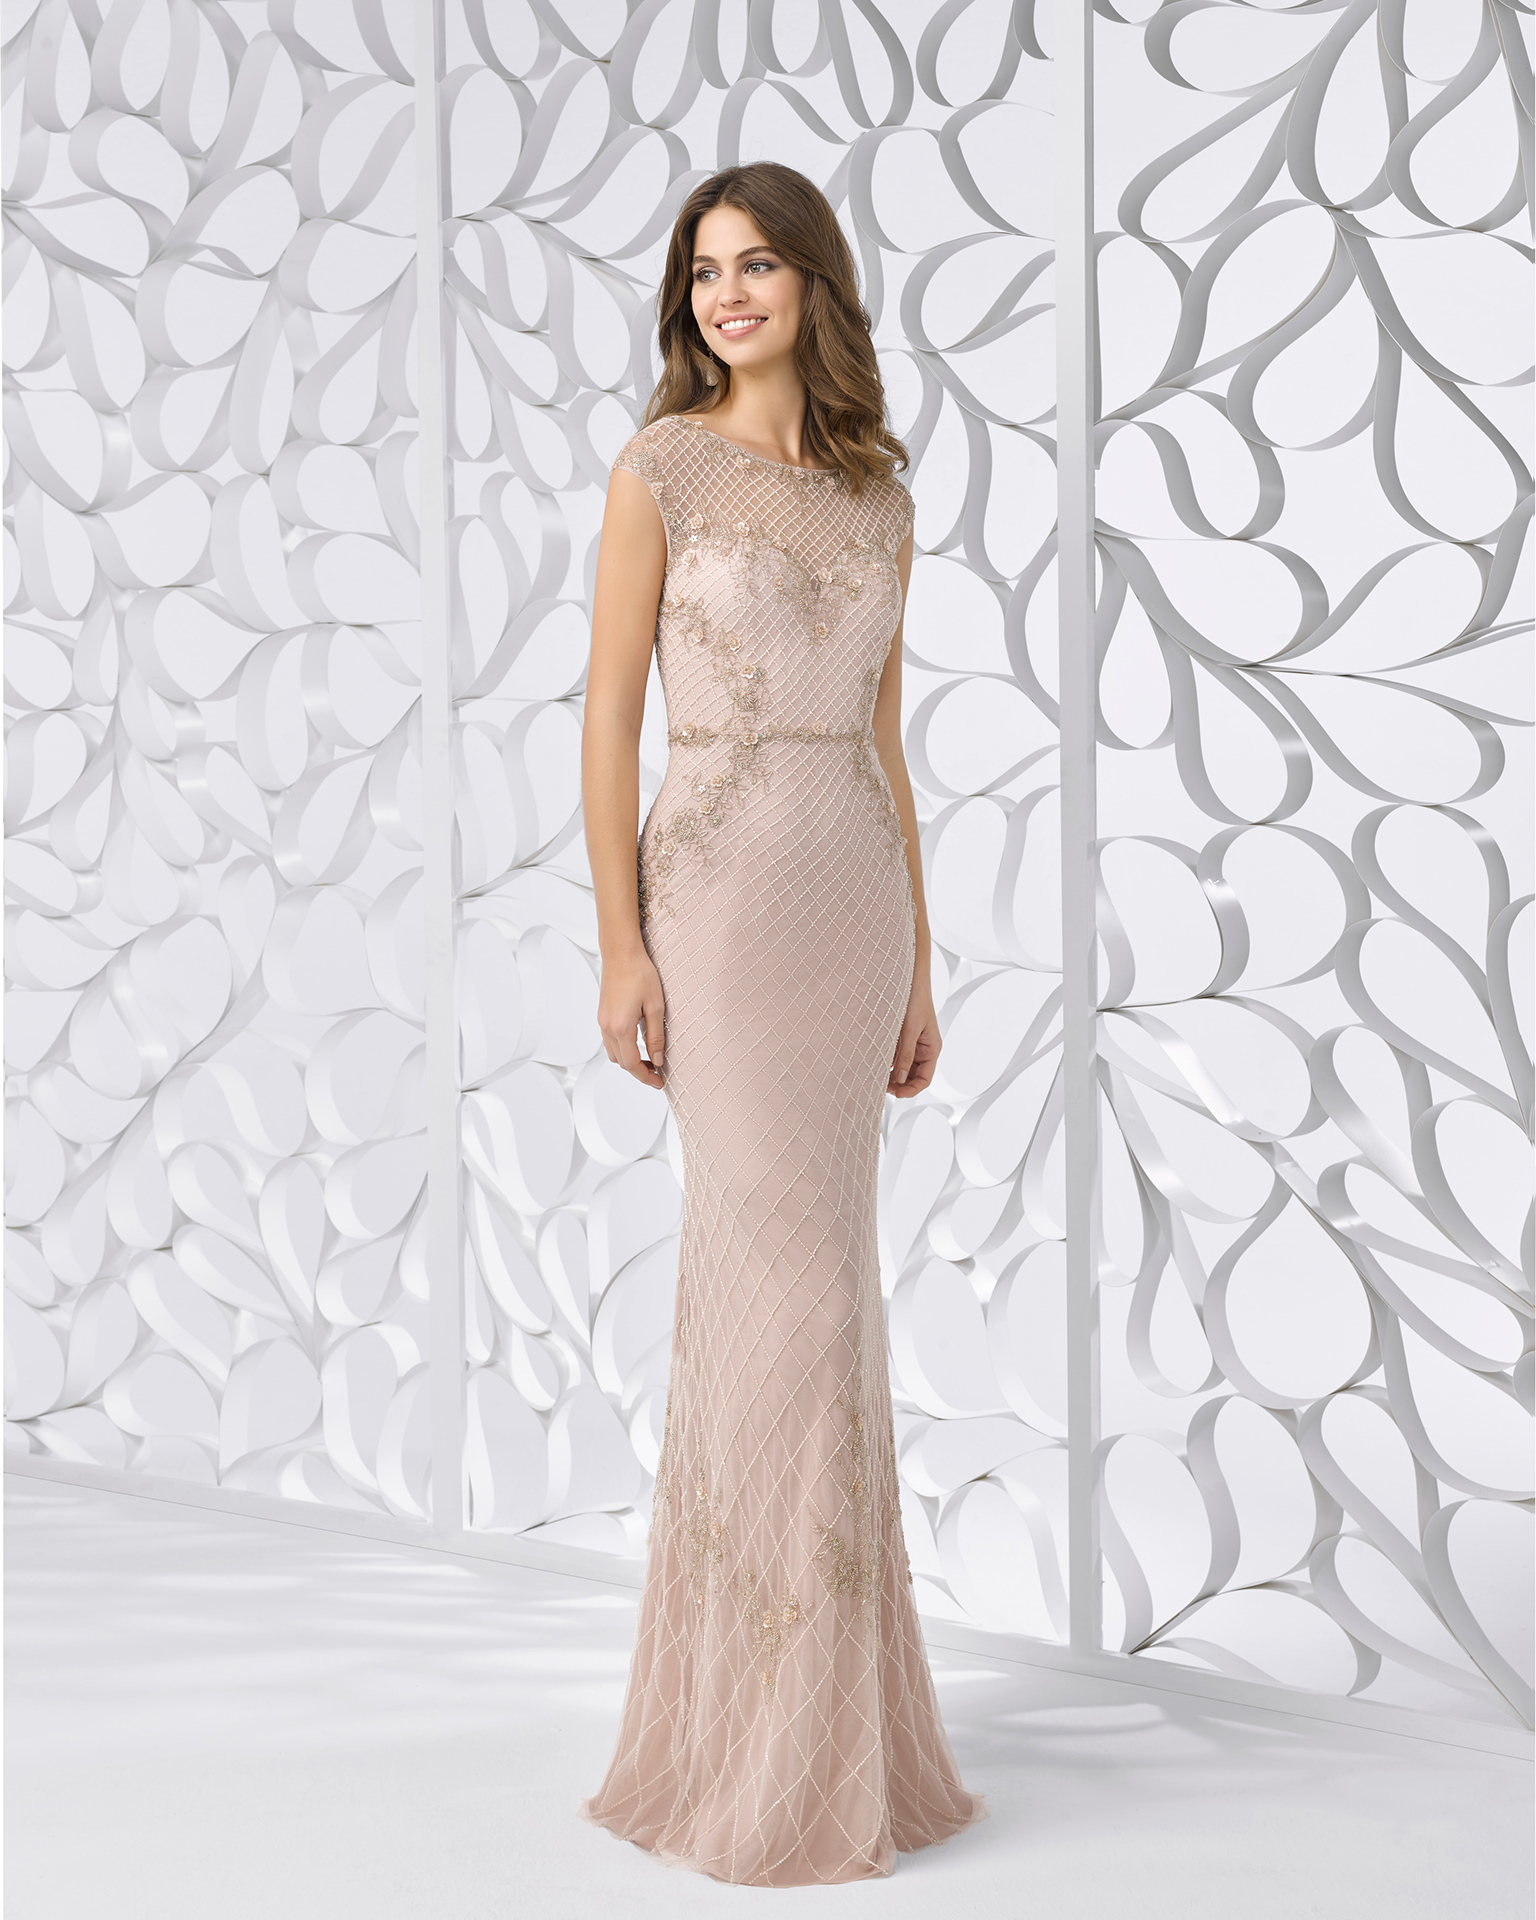 Beaded embroidery cocktail dress with bateau neckline and illusion back. Available in nude. 2018 FIESTA AIRE BARCELONA Collection.